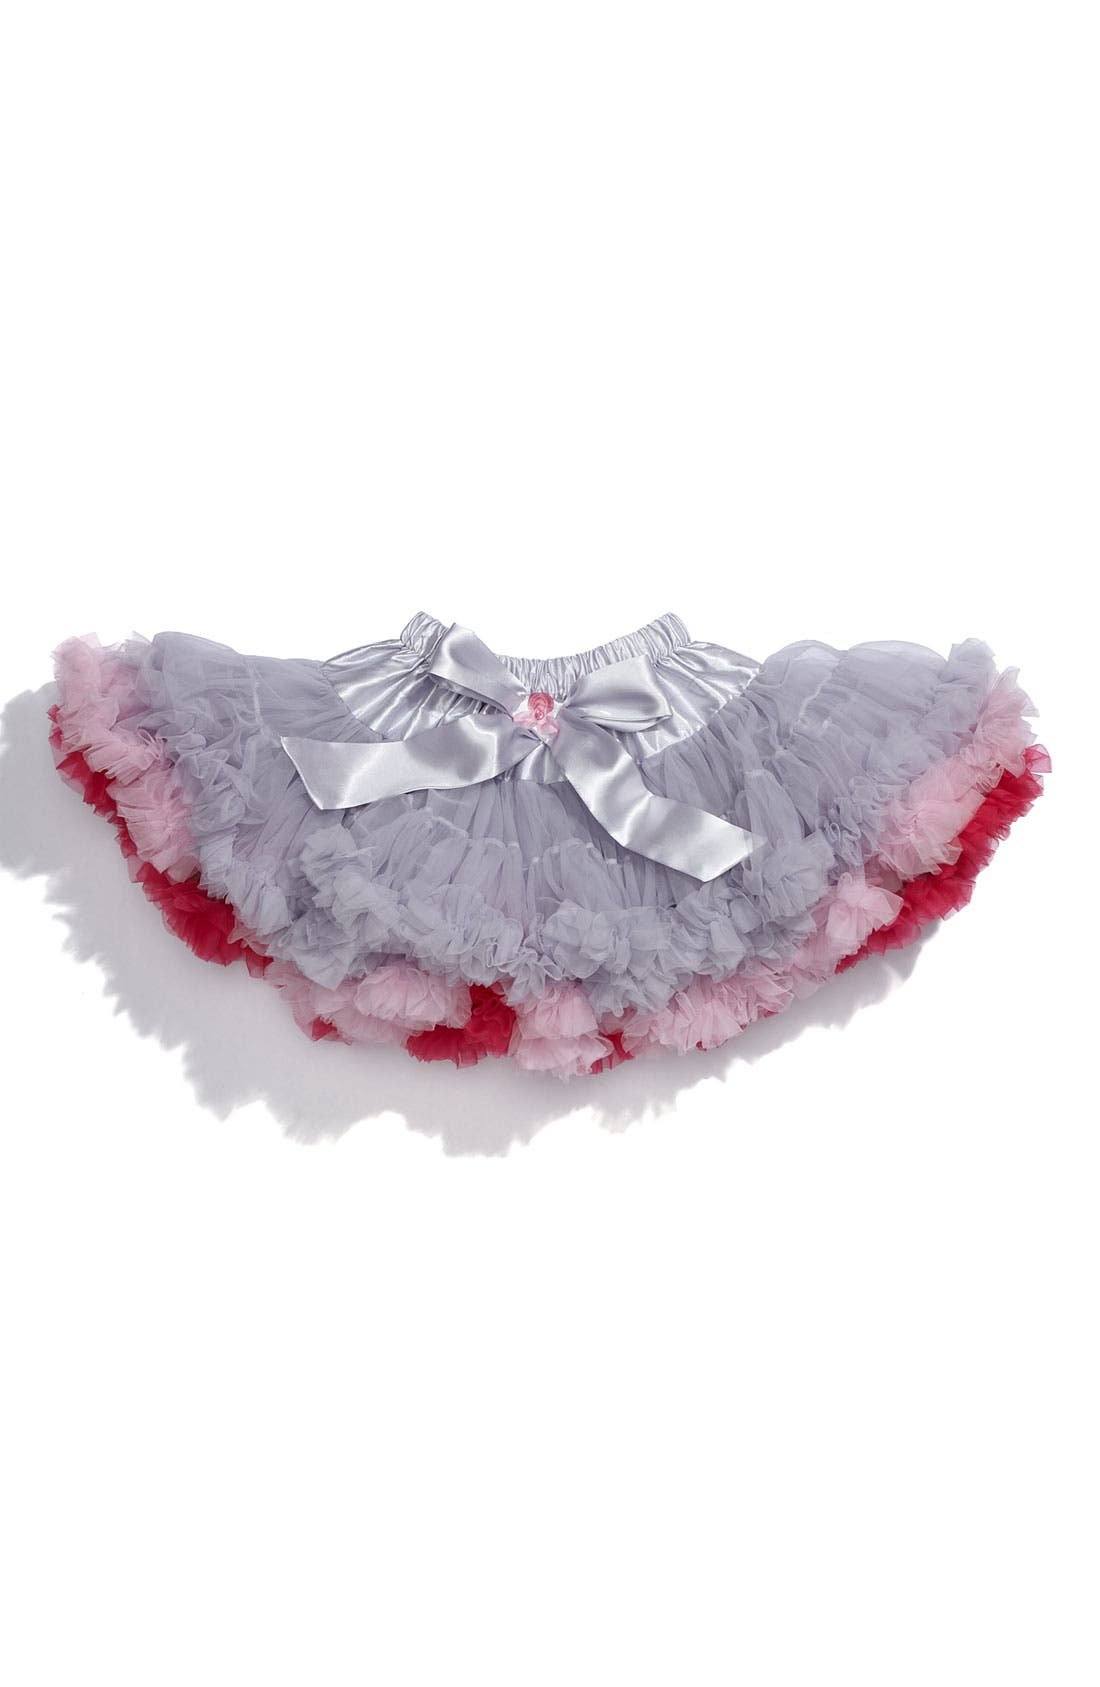 Alternate Image 1 Selected - PLH Bows & Laces Two Tone Pettiskirt (Infant)